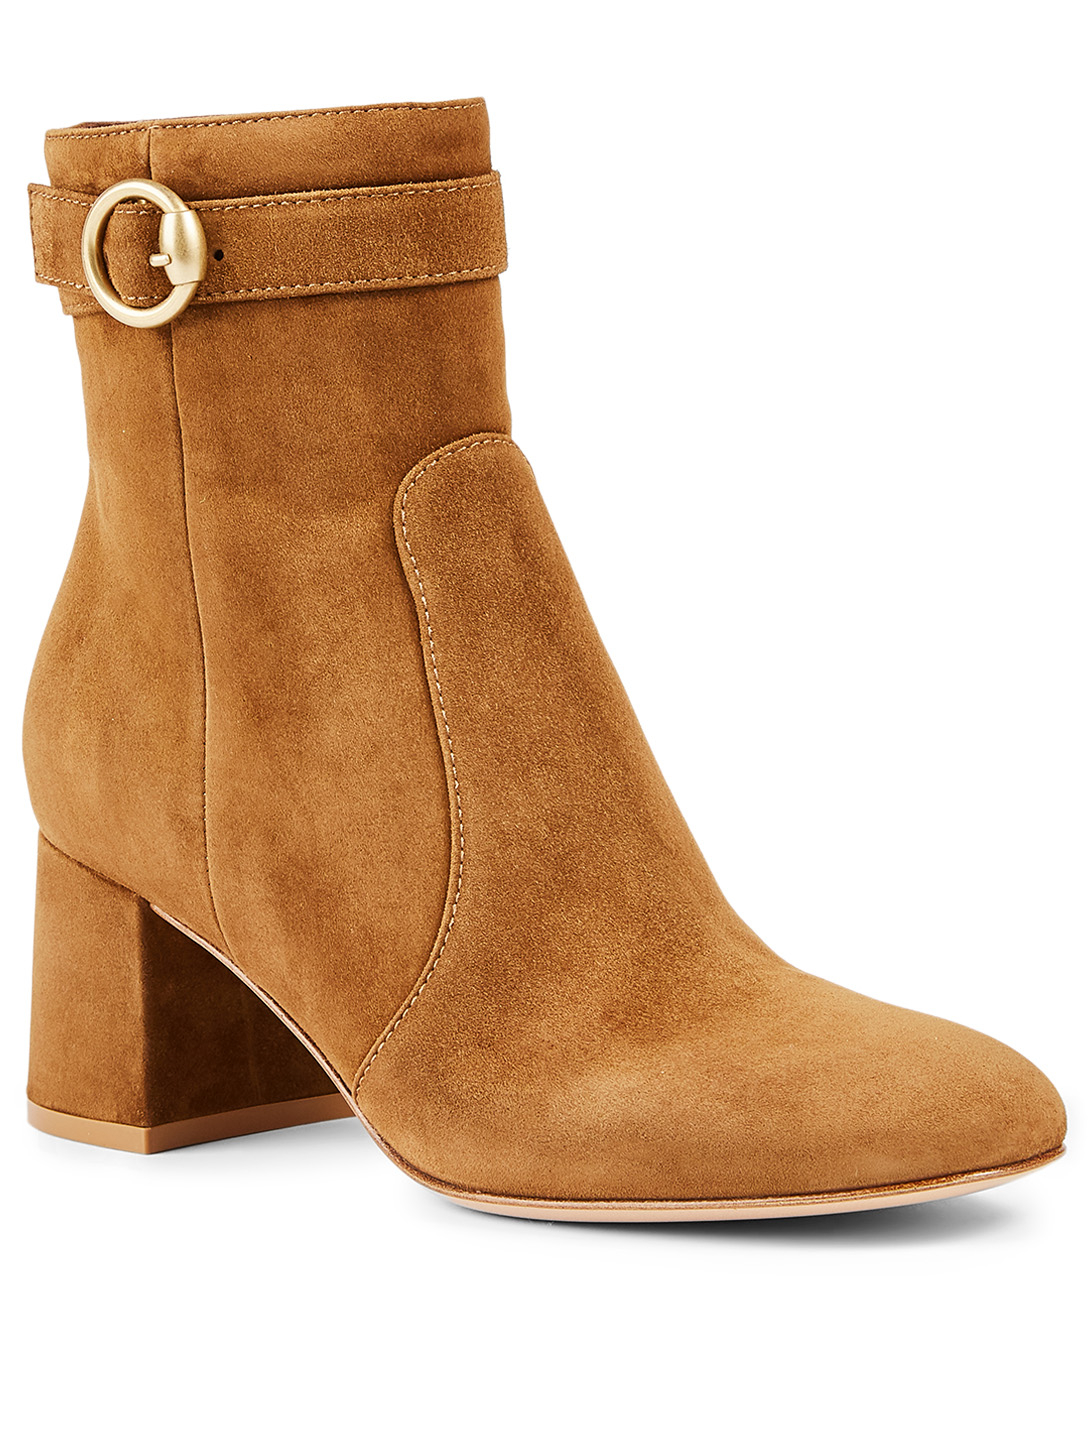 GIANVITO ROSSI Milo 60 Suede Heeled Ankle Boots Women's Beige